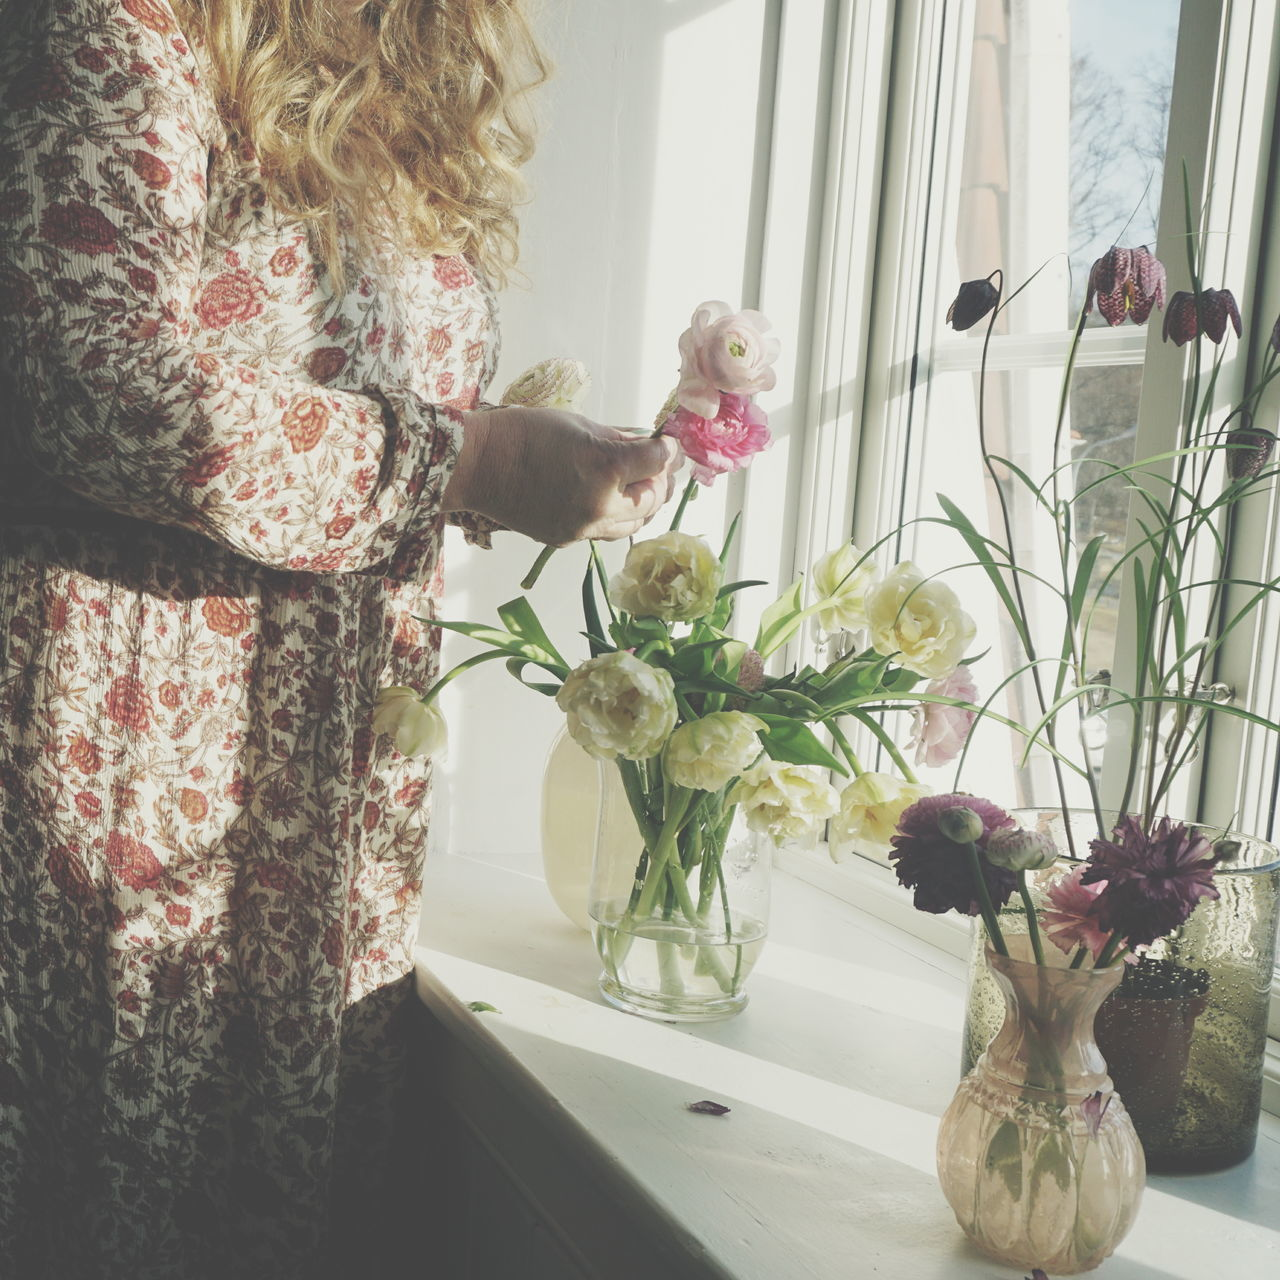 Making a bouquet of Spring flowers Adult Adults Only Beauty In Nature Bouquet Day Domestic Life Flower Flower Arrangement Flower Head Fragility Freshness Growth Home Interior Indoors  Nature One Person One Woman Only Only Women People Plant Real People Spring Vase Watering Women